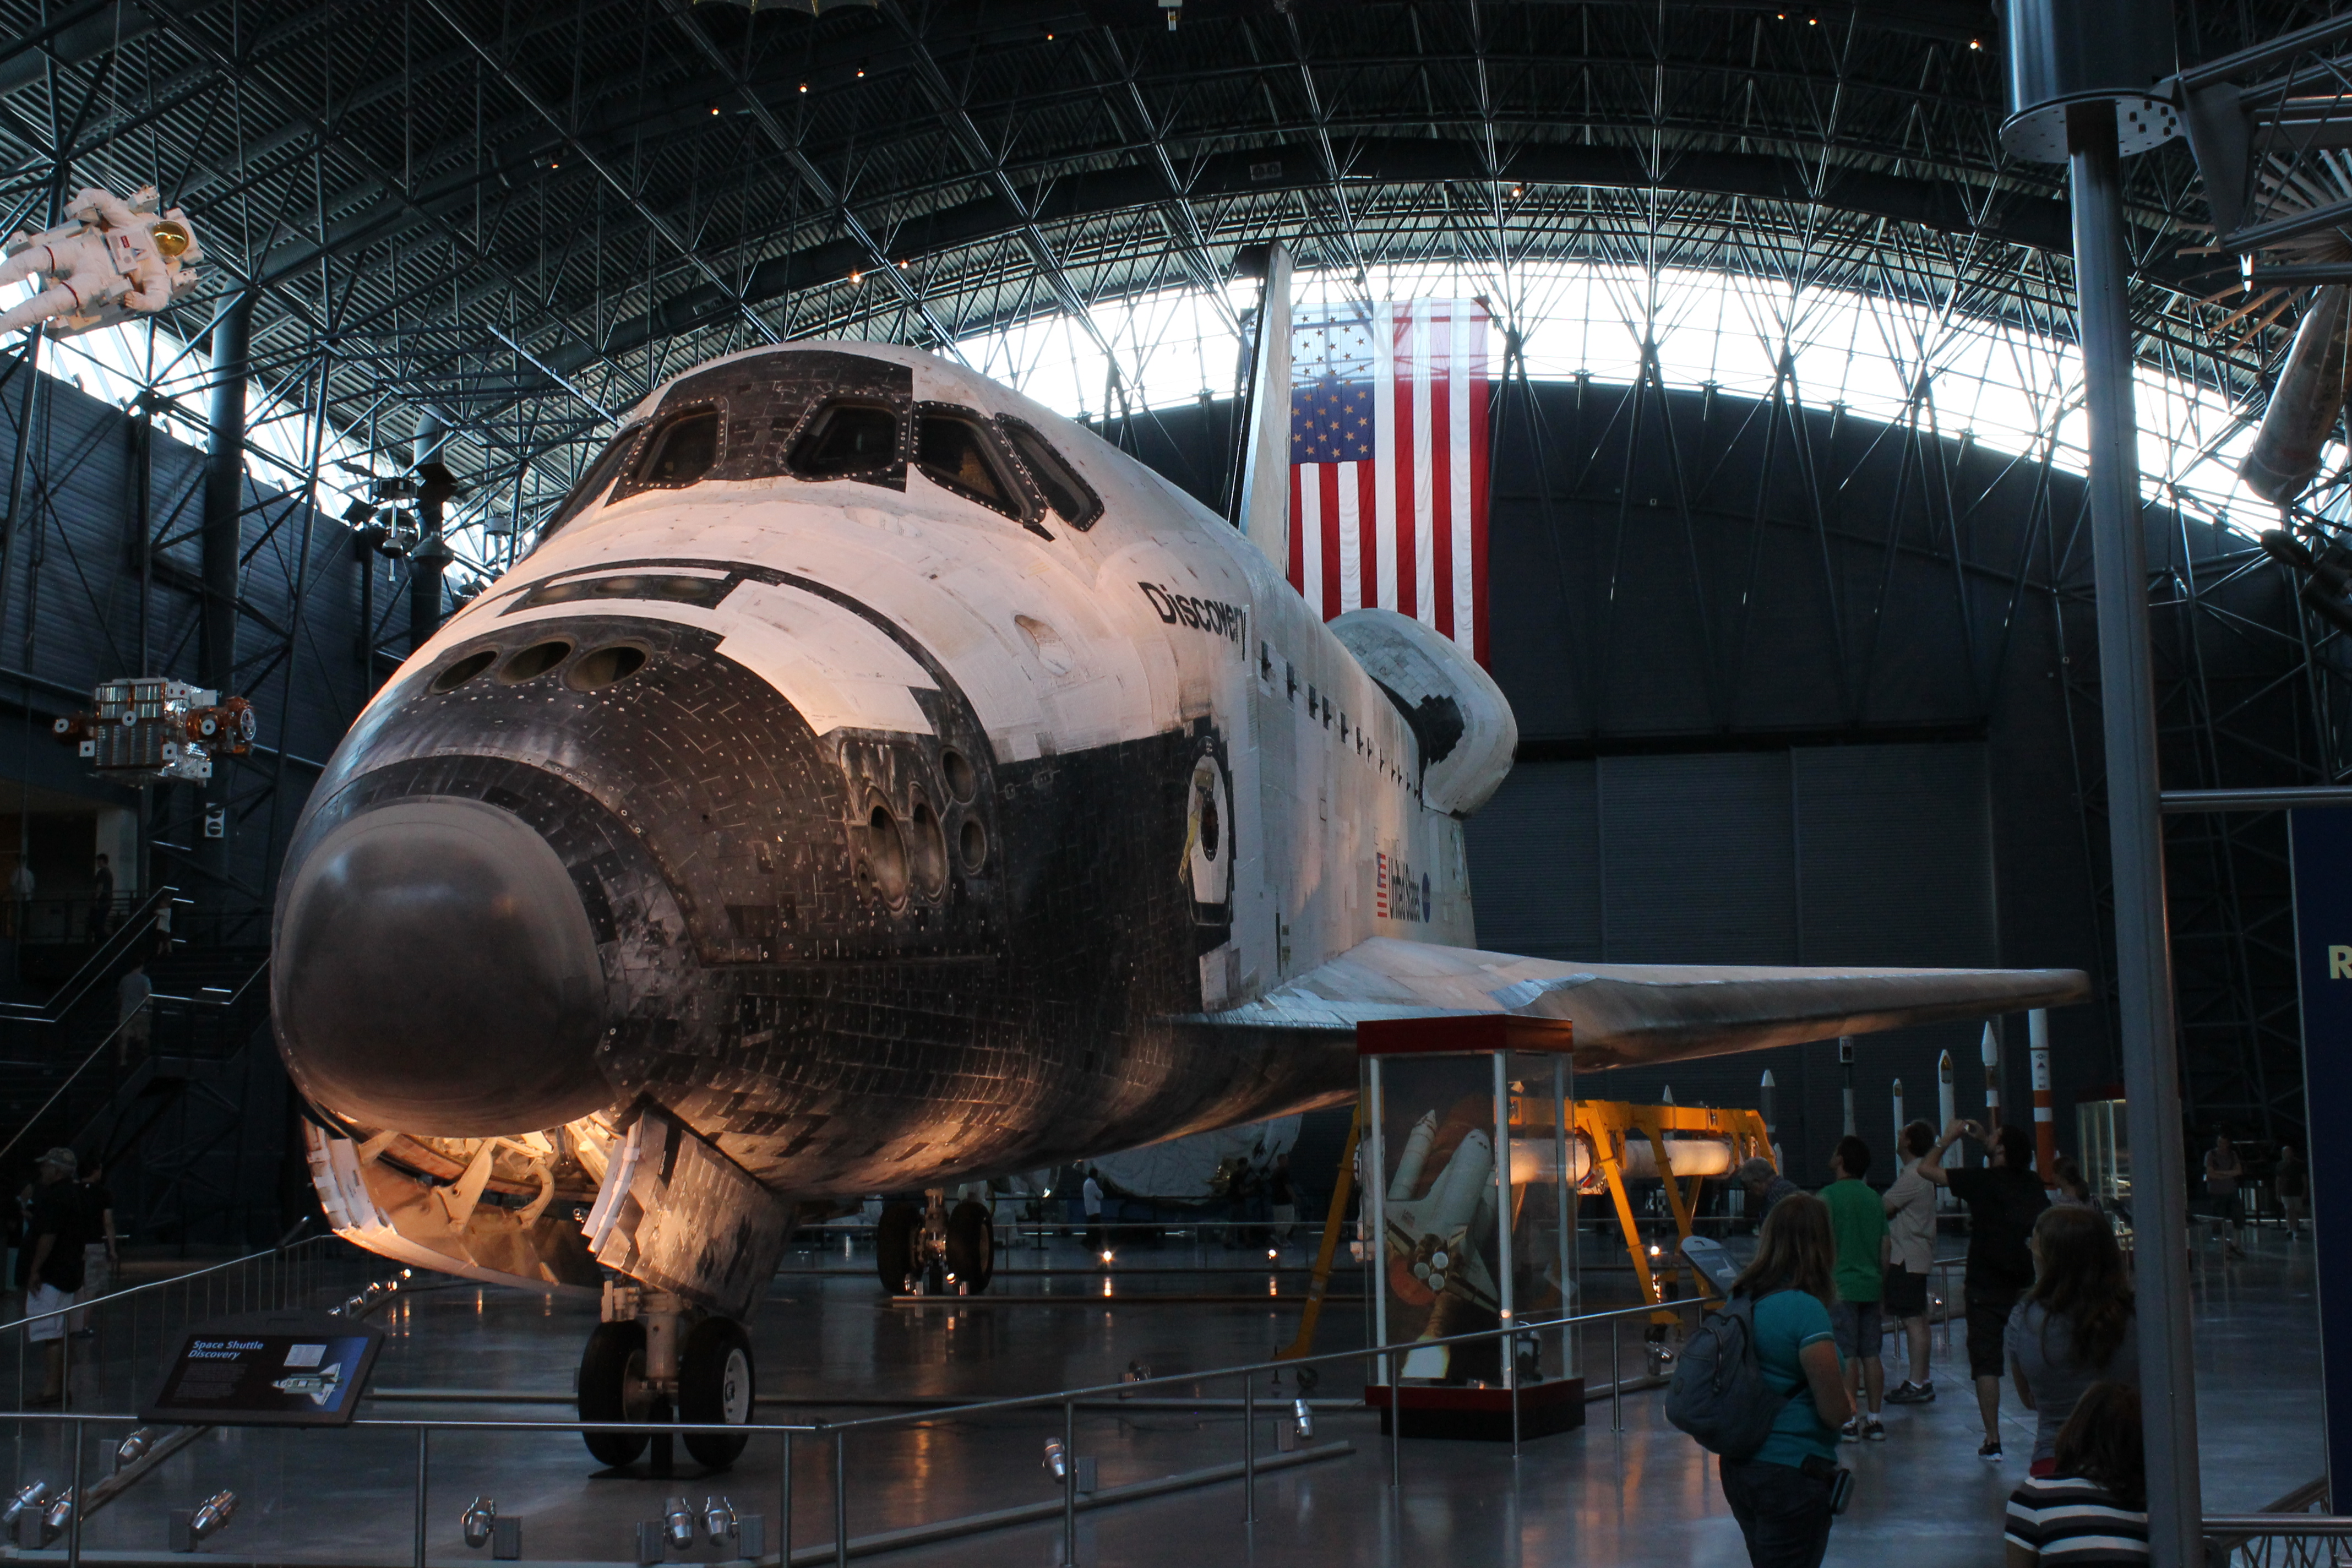 NASA Using Old Museum Parts For Space Station - NASA ...